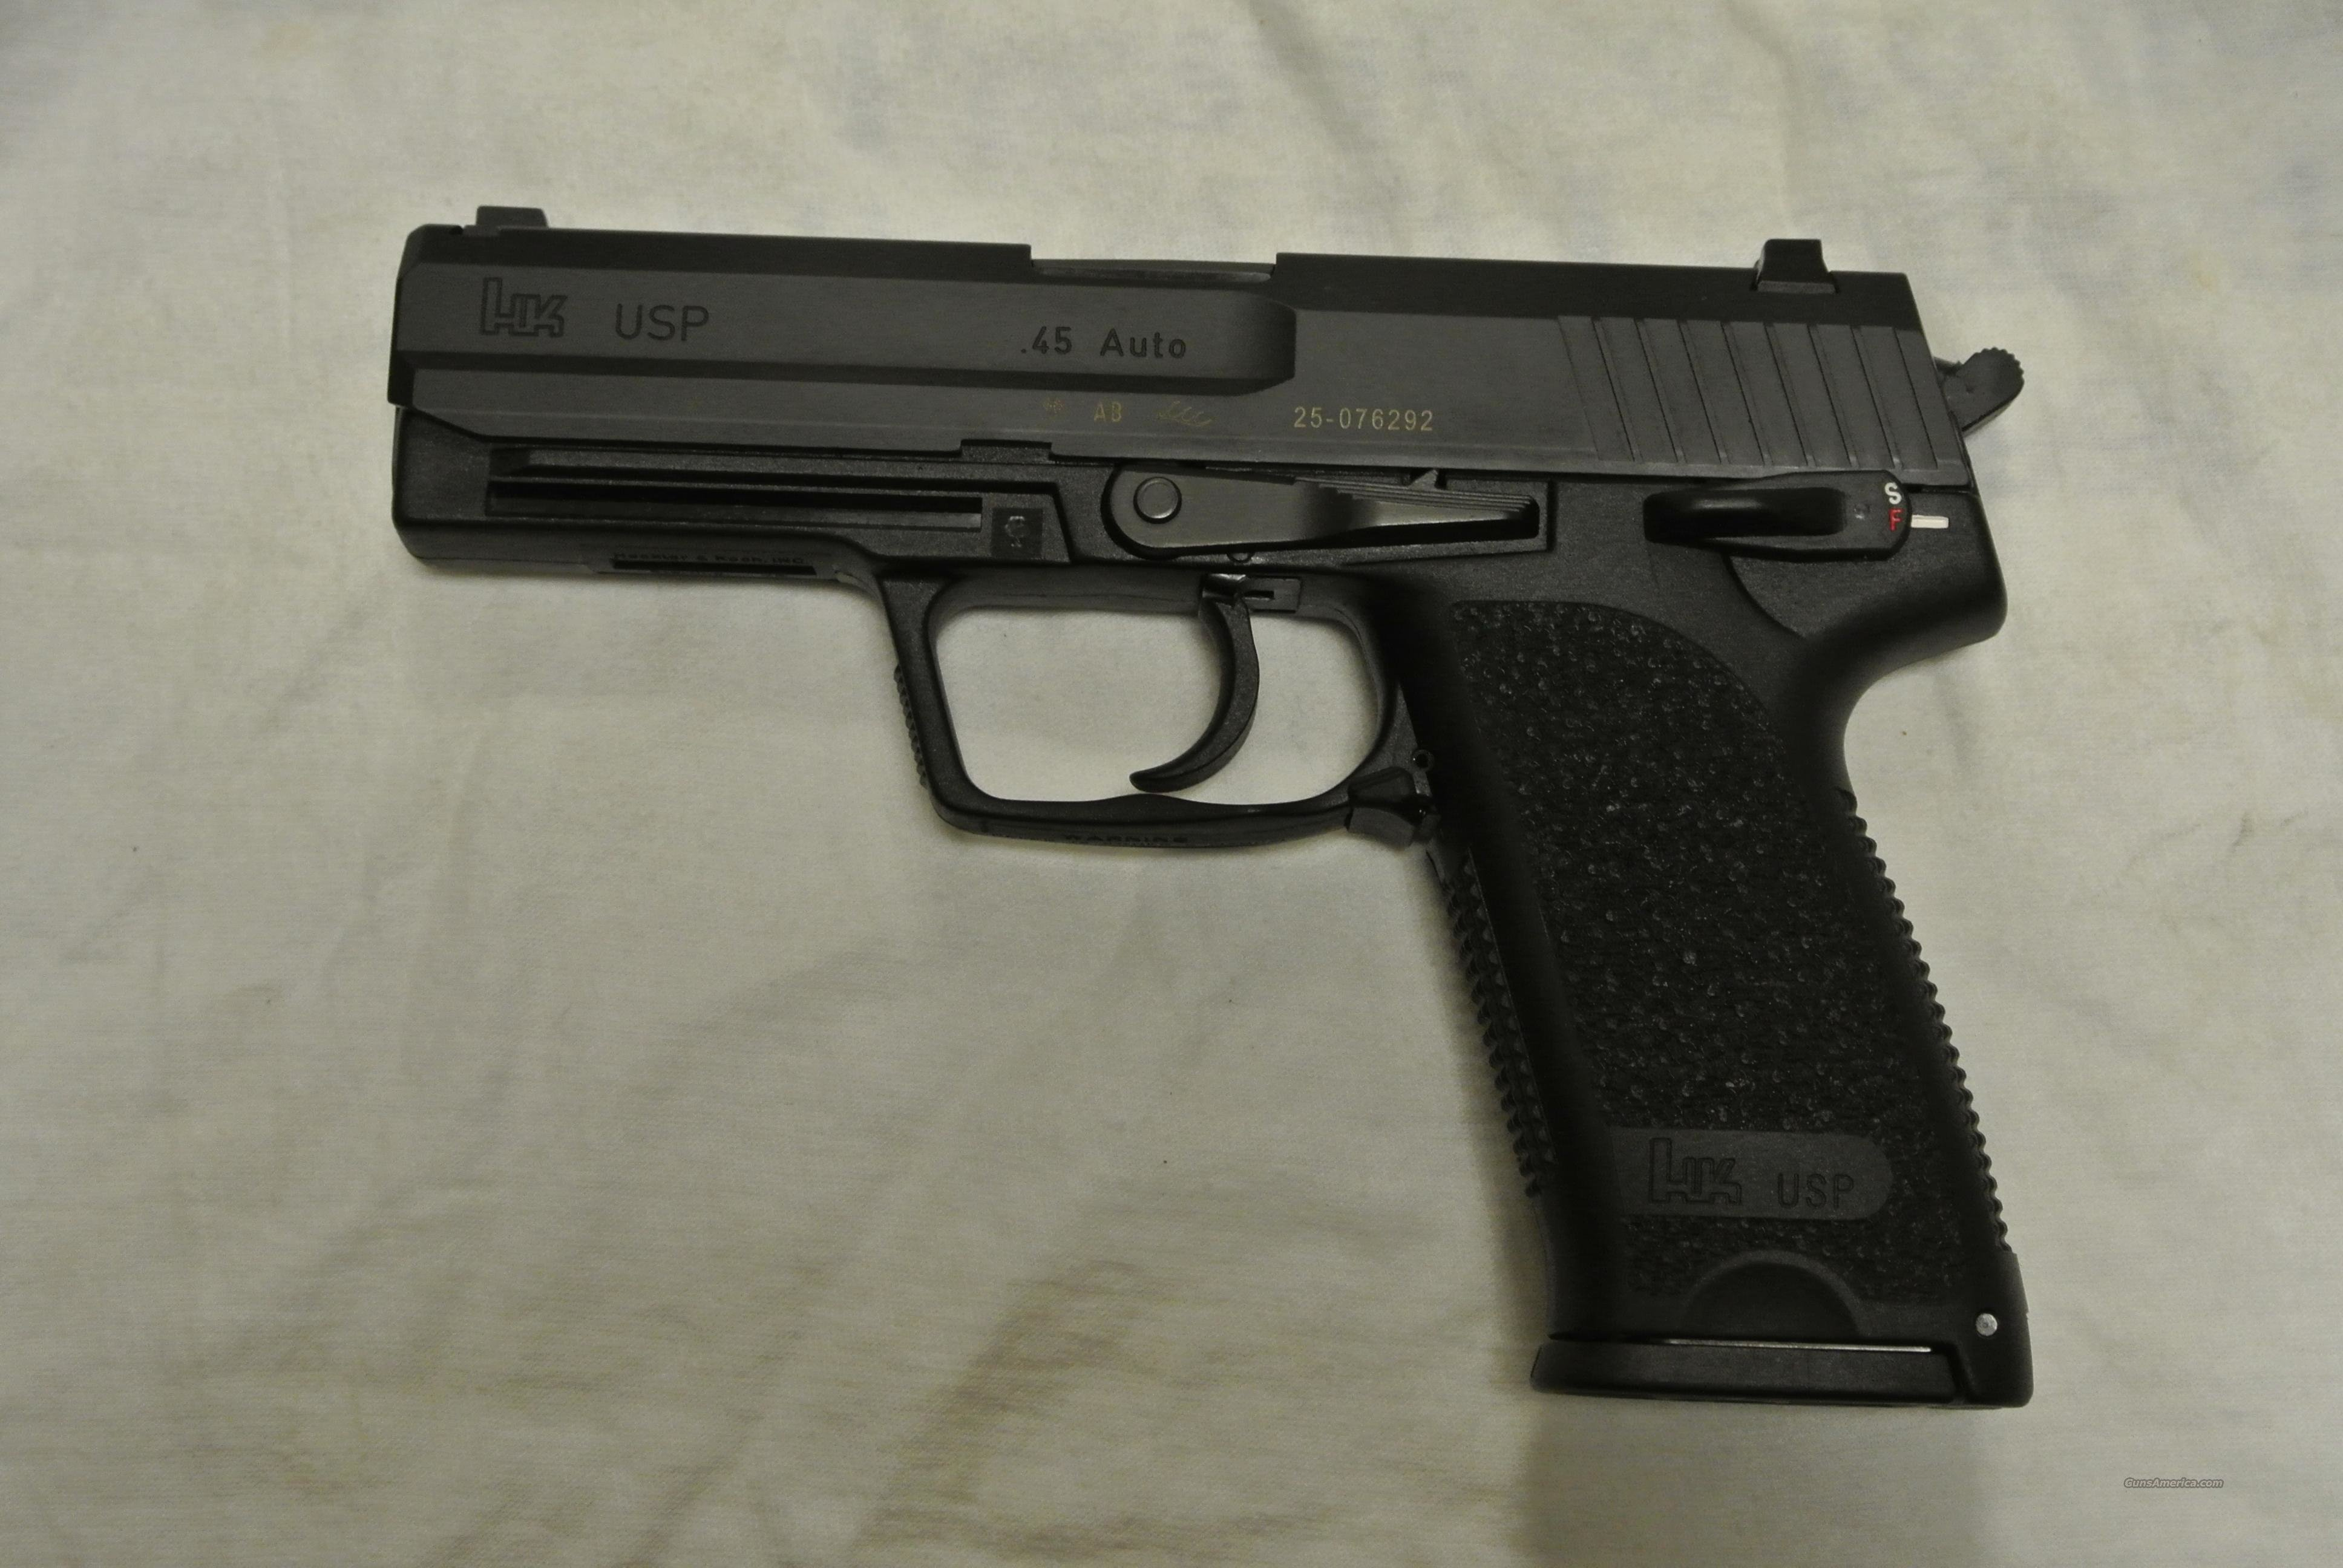 heckler koch usp 45 auto full size pistol for sale. Black Bedroom Furniture Sets. Home Design Ideas